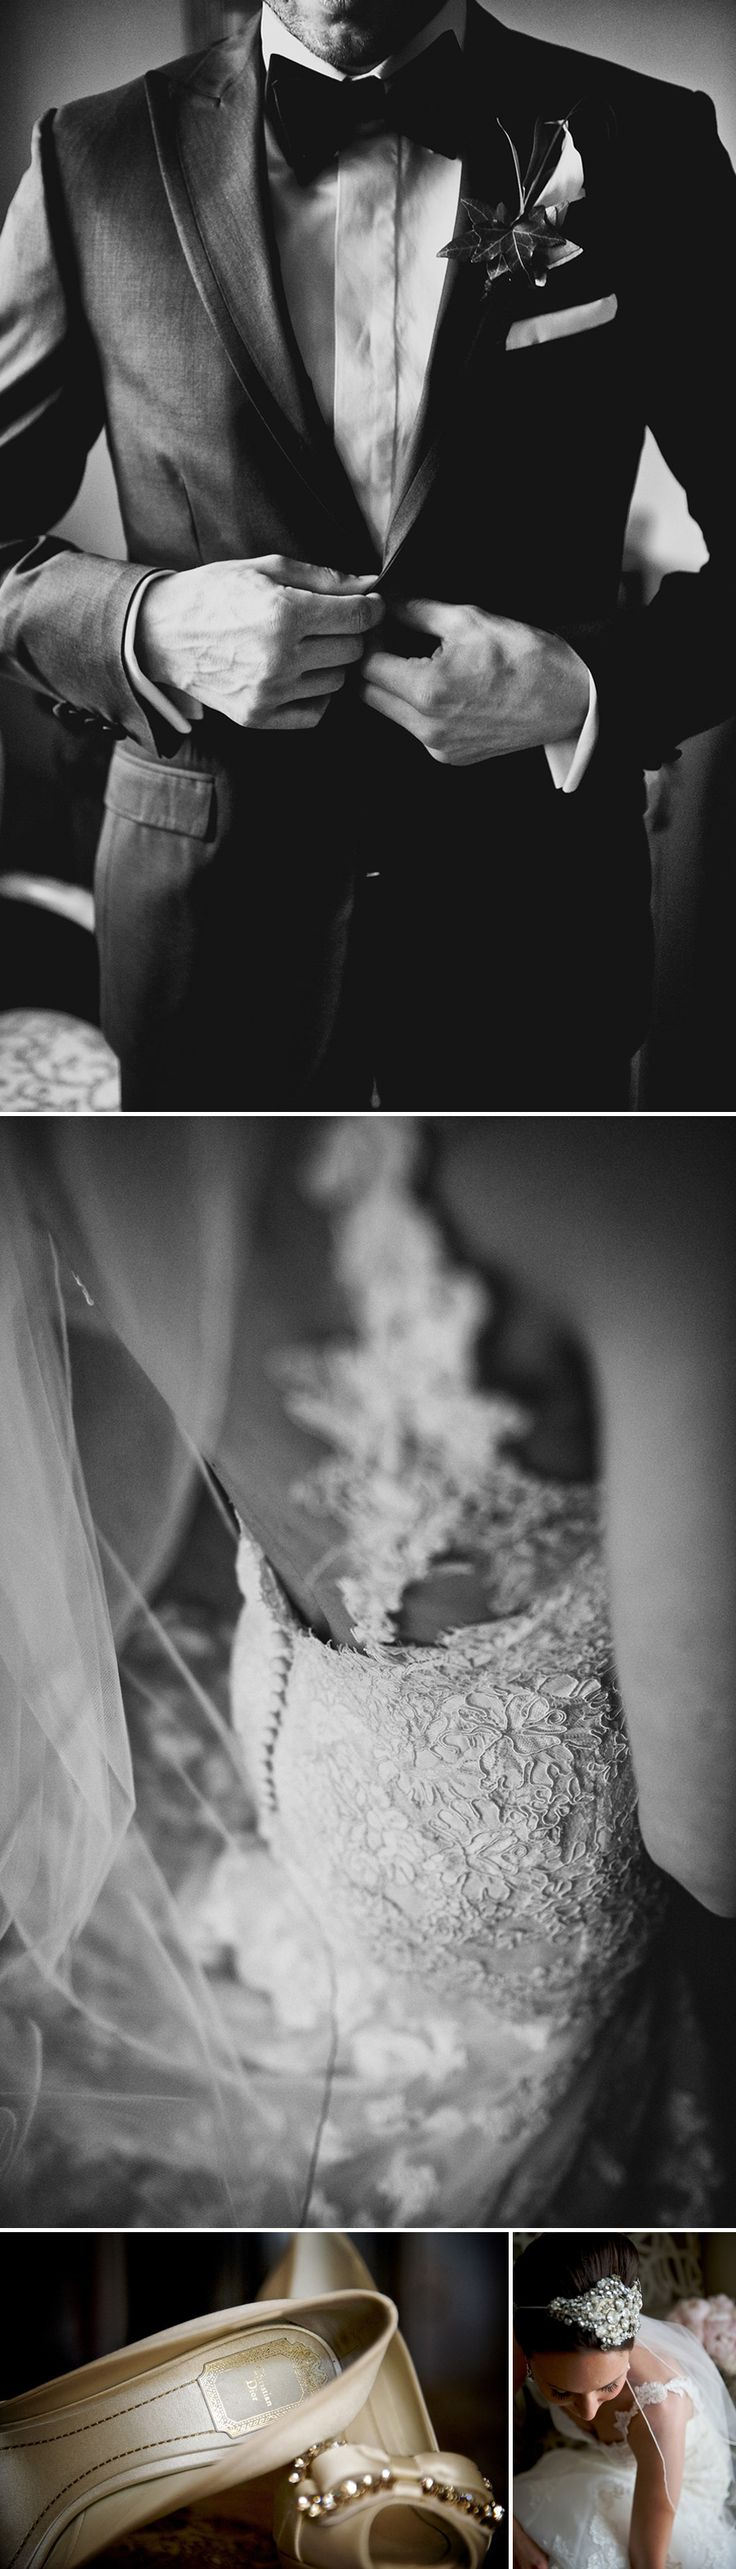 Wedding published in Wedluxe. Wedding details and beautiful moments.